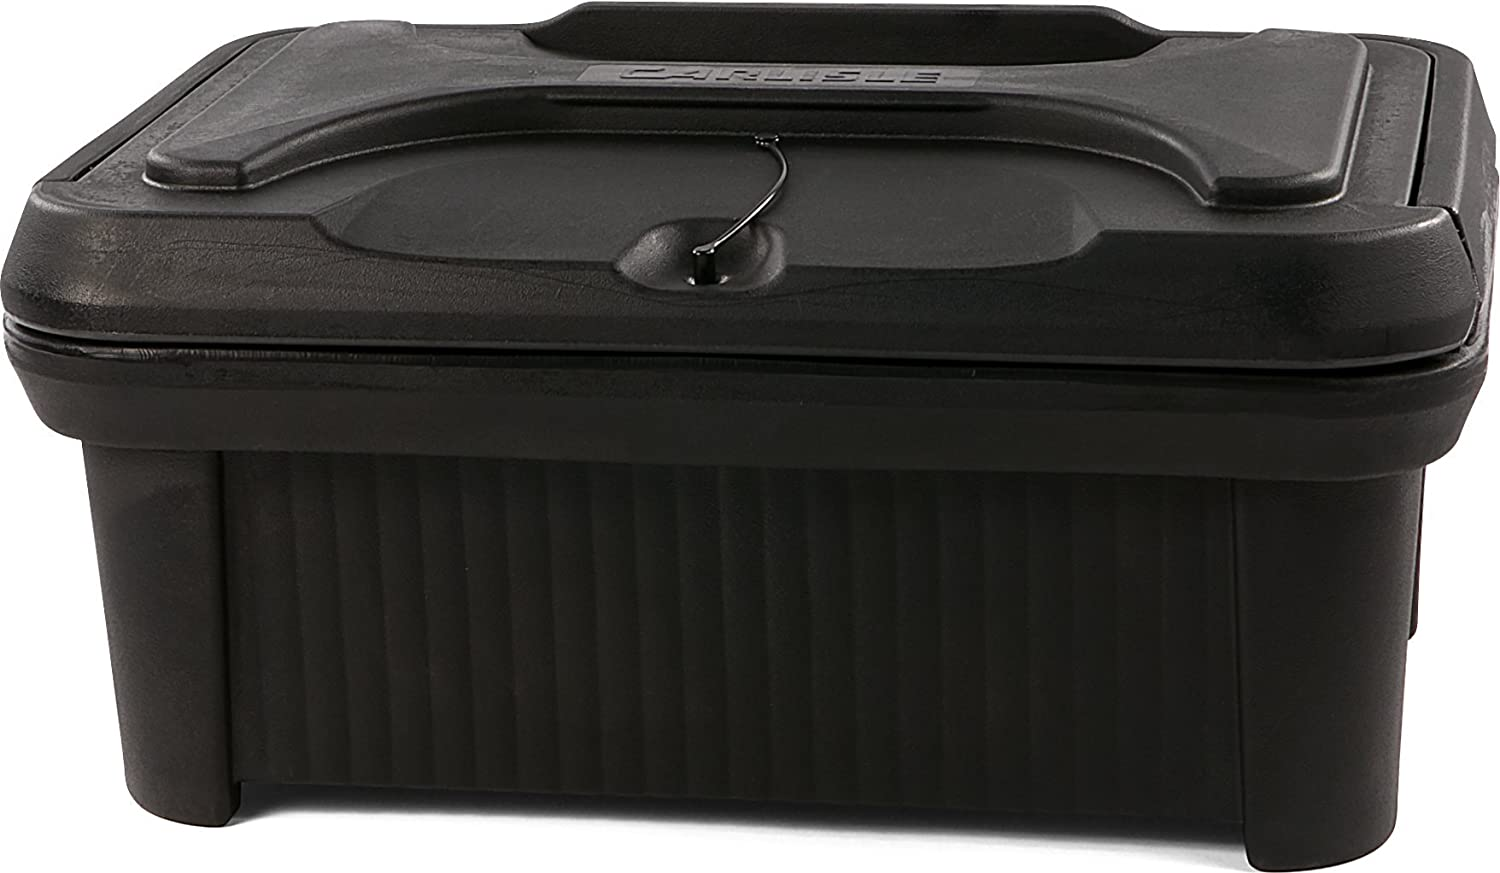 Carlisle XT160003 Cateraide Insulated Food Pan Carrier, Top Loading, 6